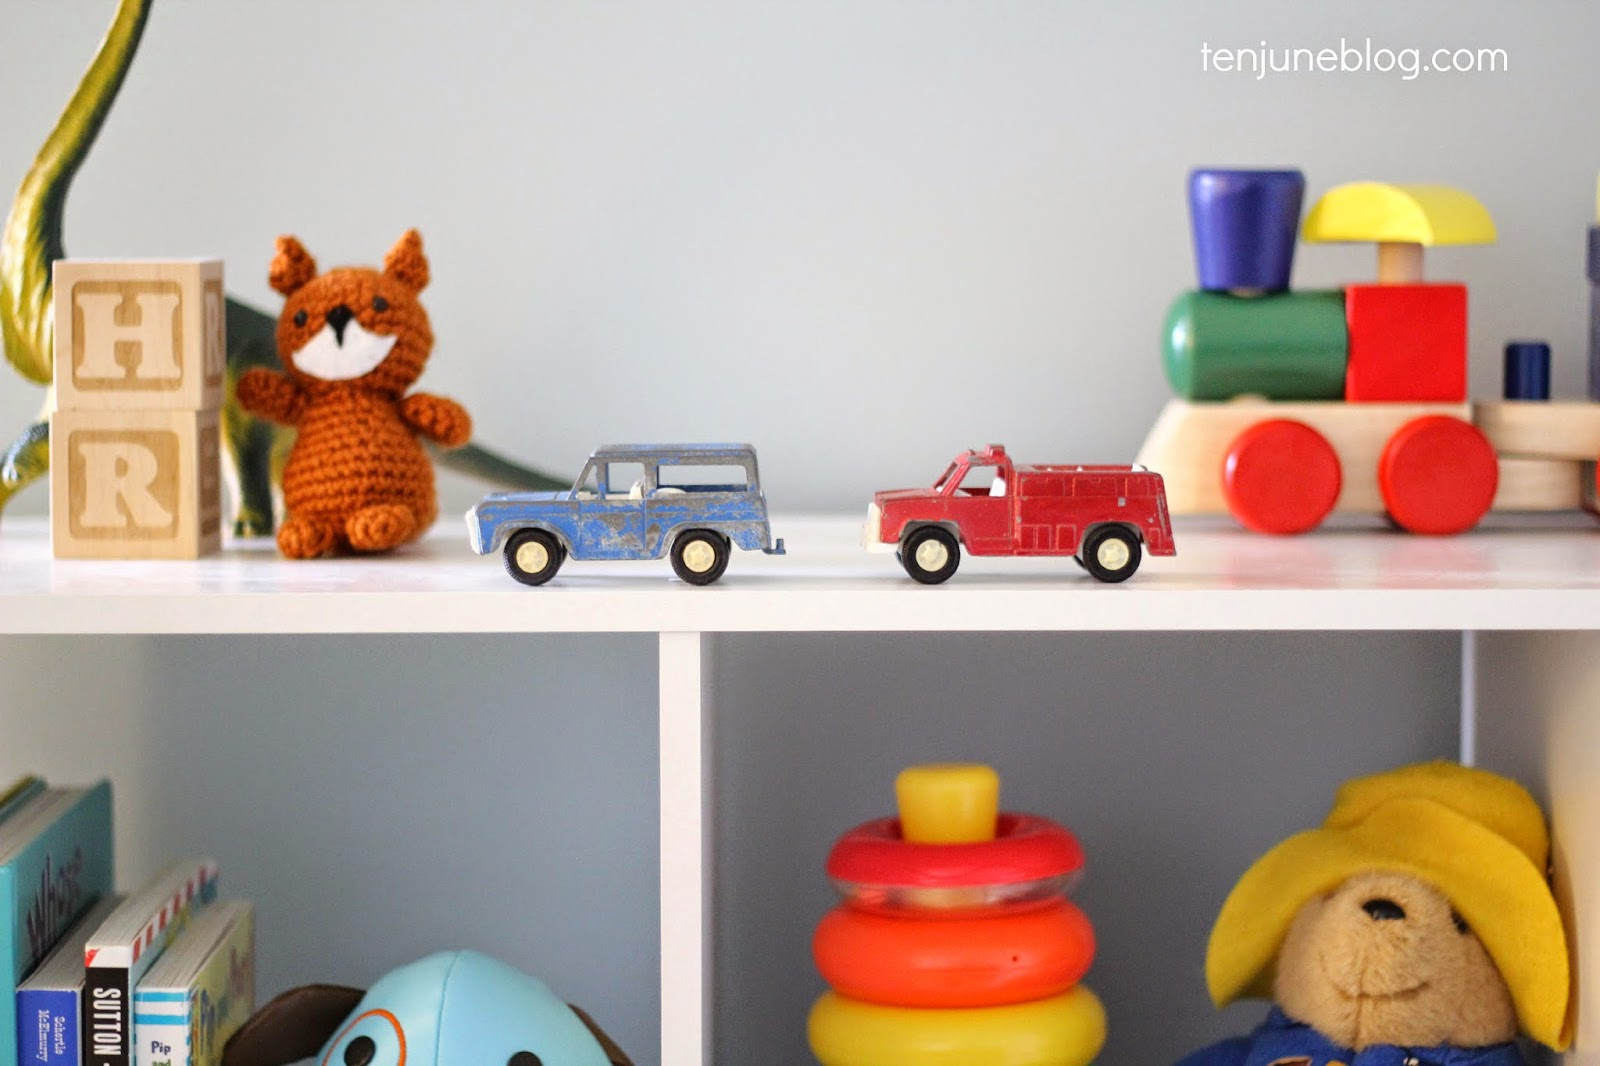 10 Types Of Toy Organizers For Kids Bedrooms And Playrooms: Ten June: Kids Room/Play Room Toy Storage Ideas